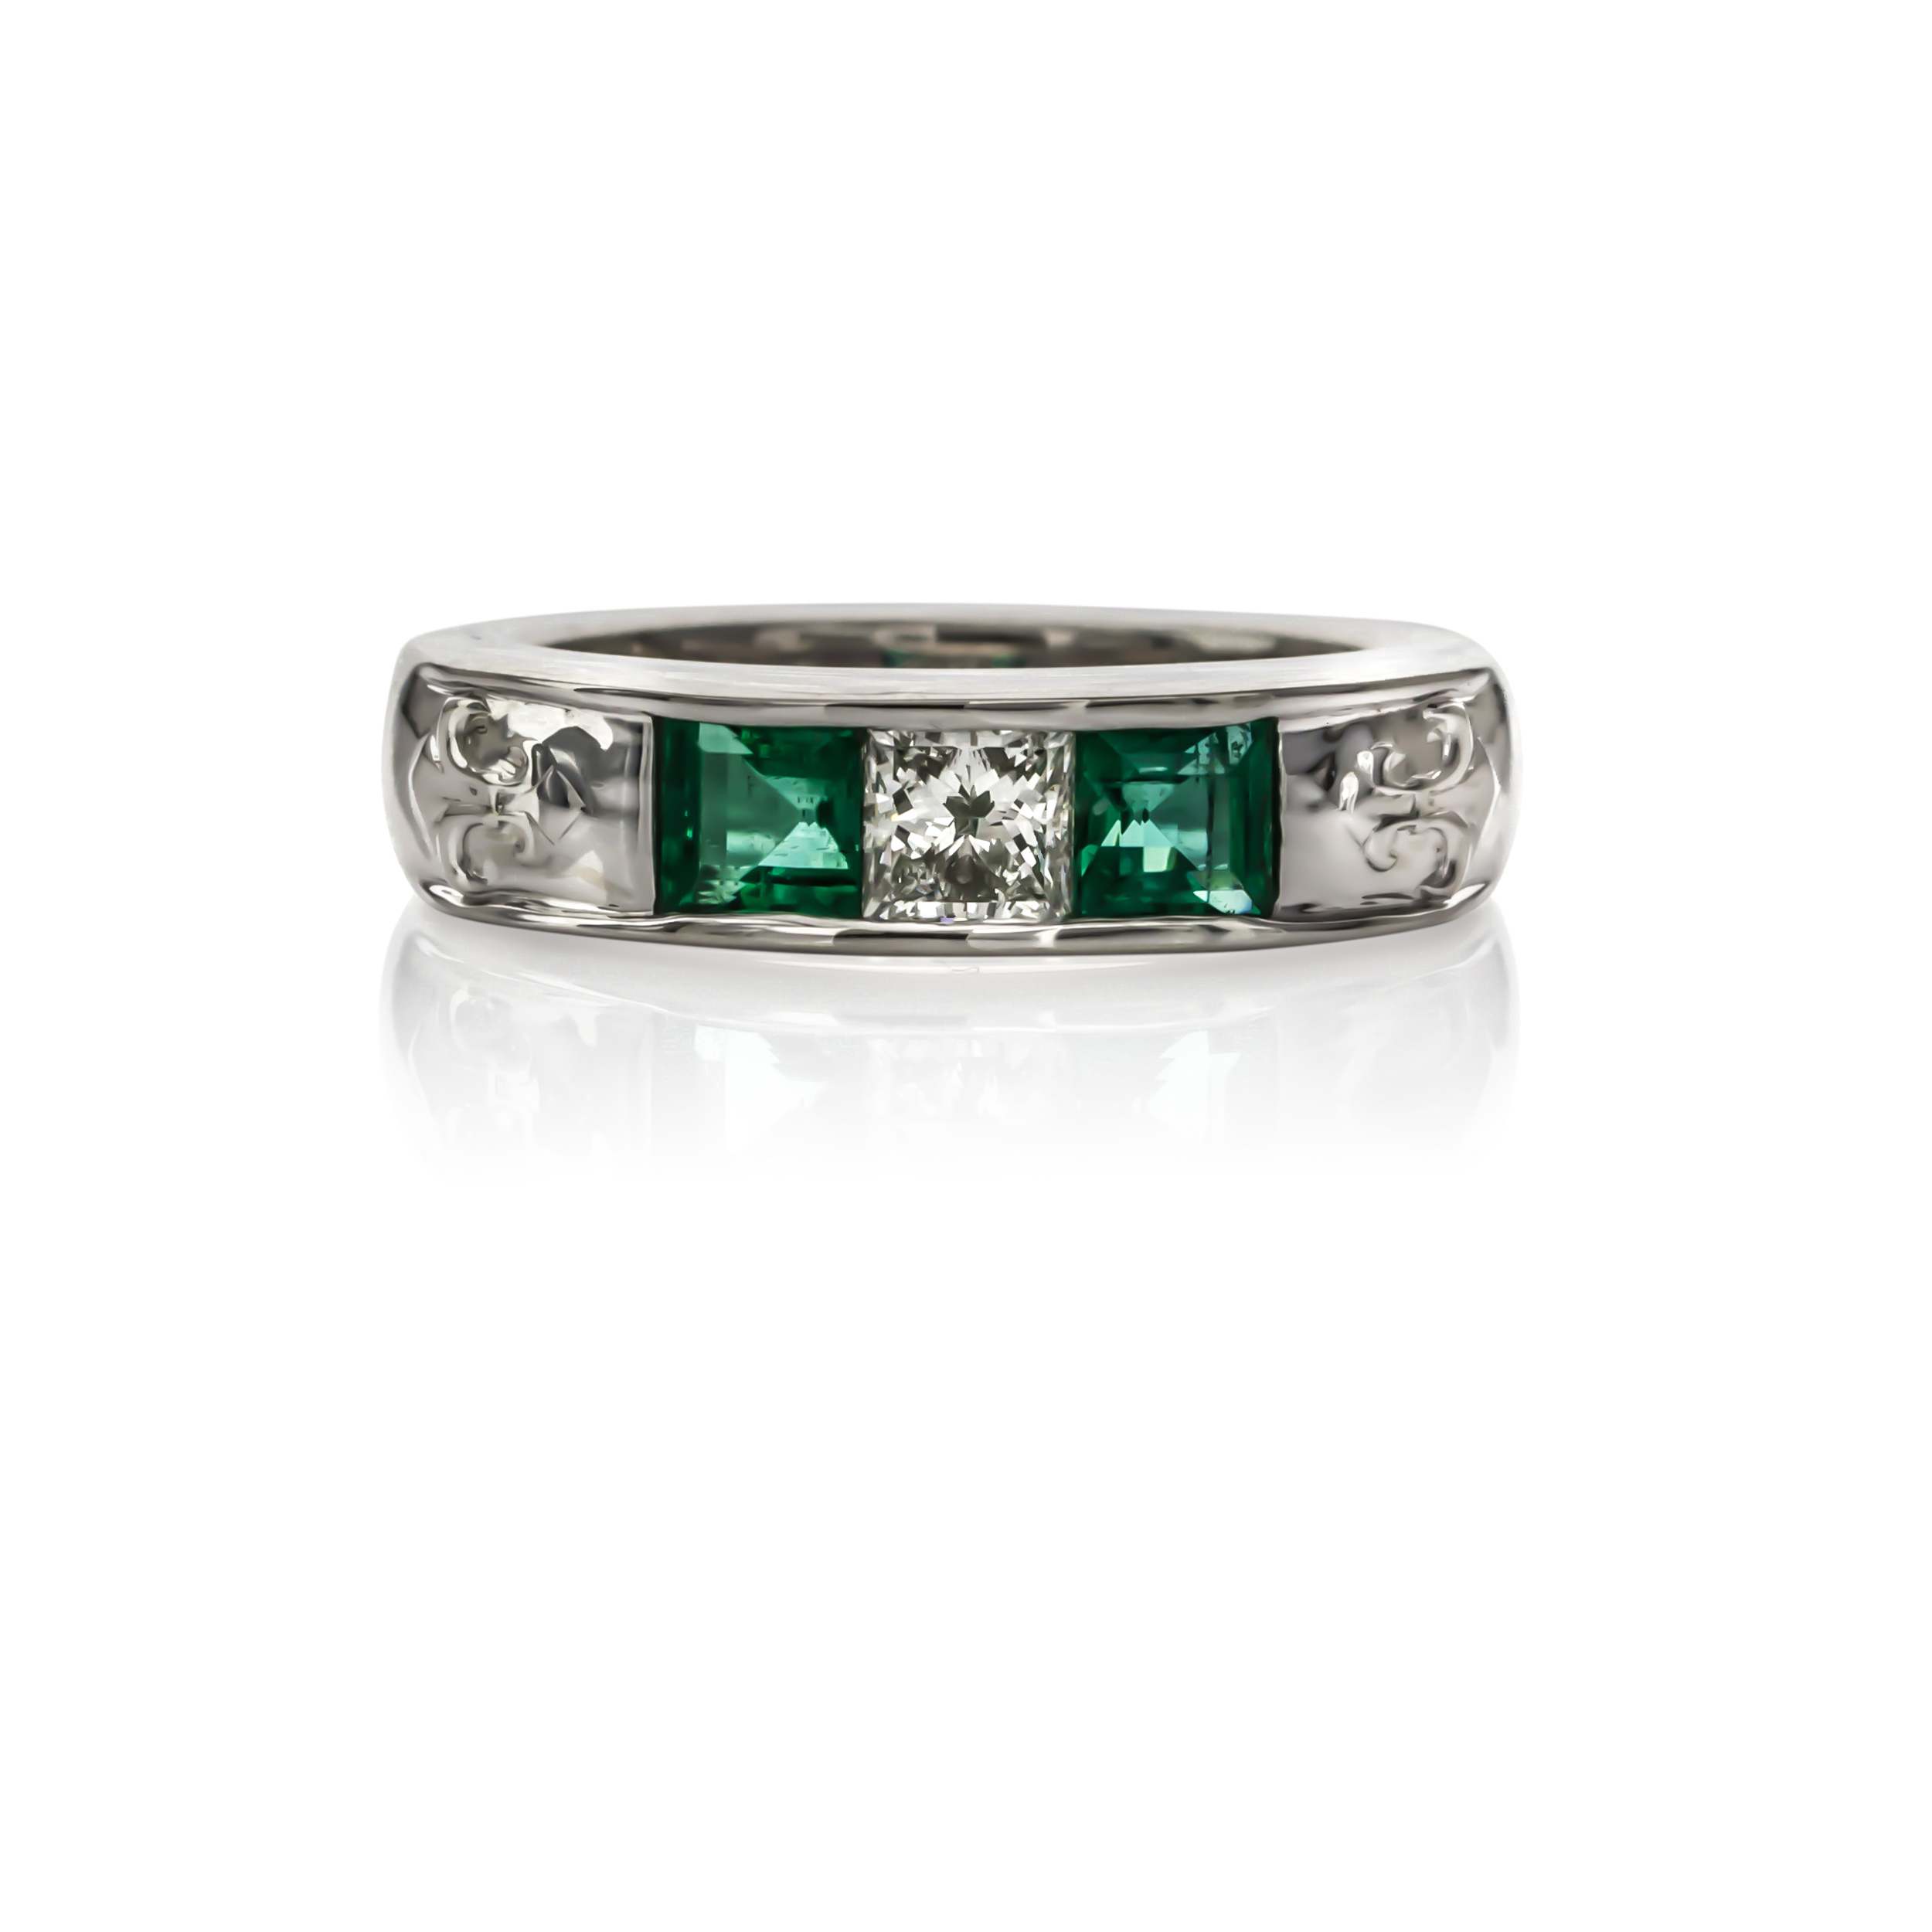 CUSTOM EMERALD AND DIAMOND GENTS BAND